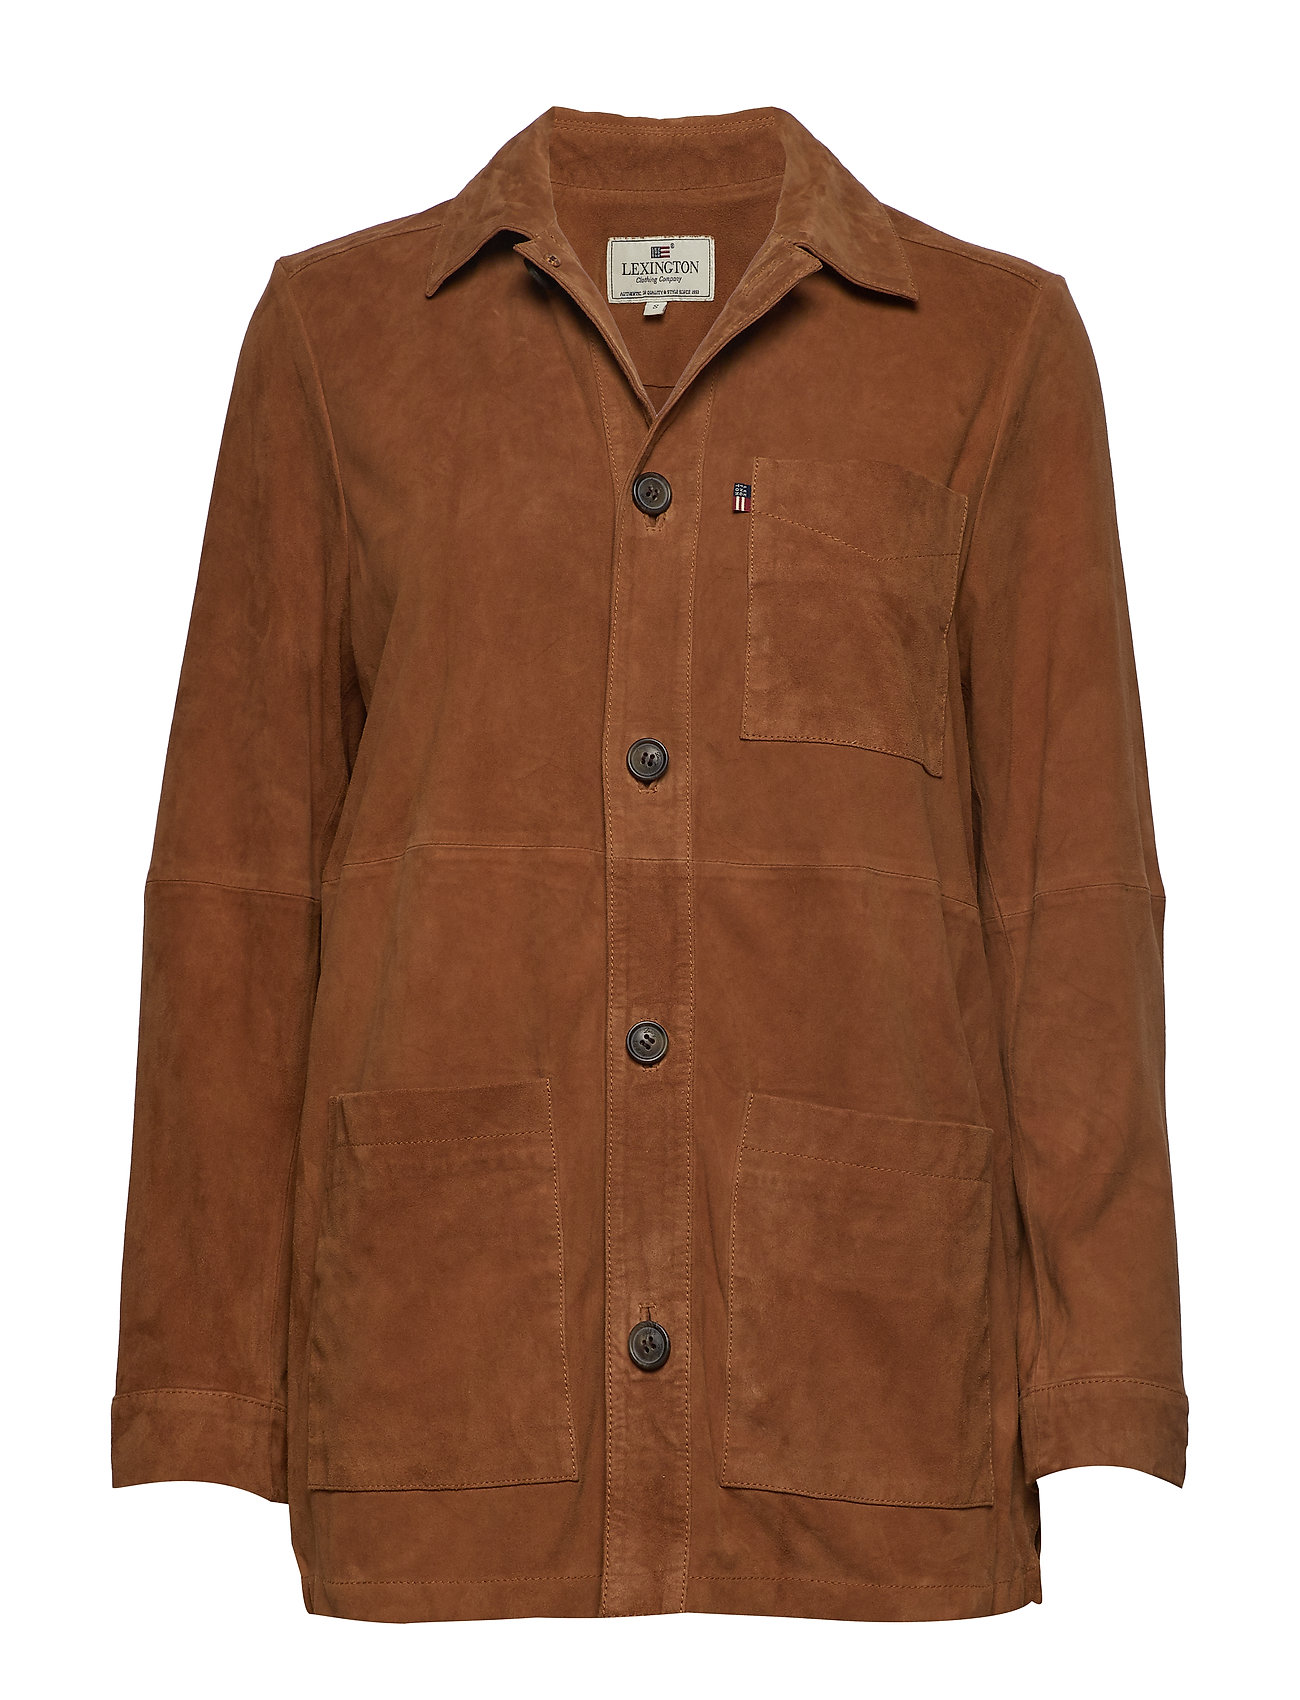 Lexington Clothing Kathy Suede Worker Shirt - BEIGE